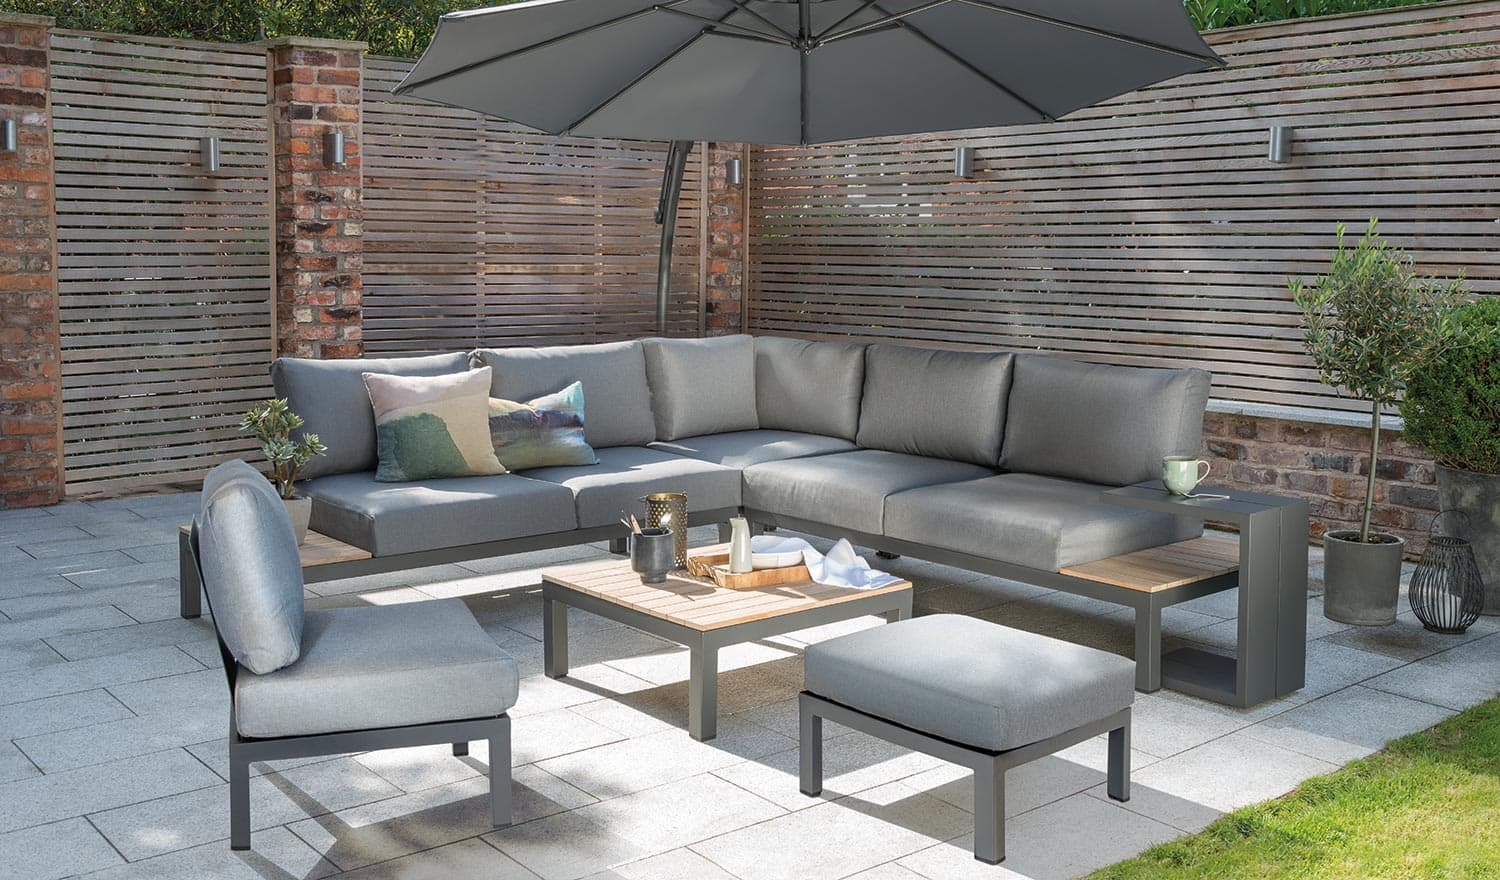 Elba Corner Set - Garden Furniture  Kettler Official Site